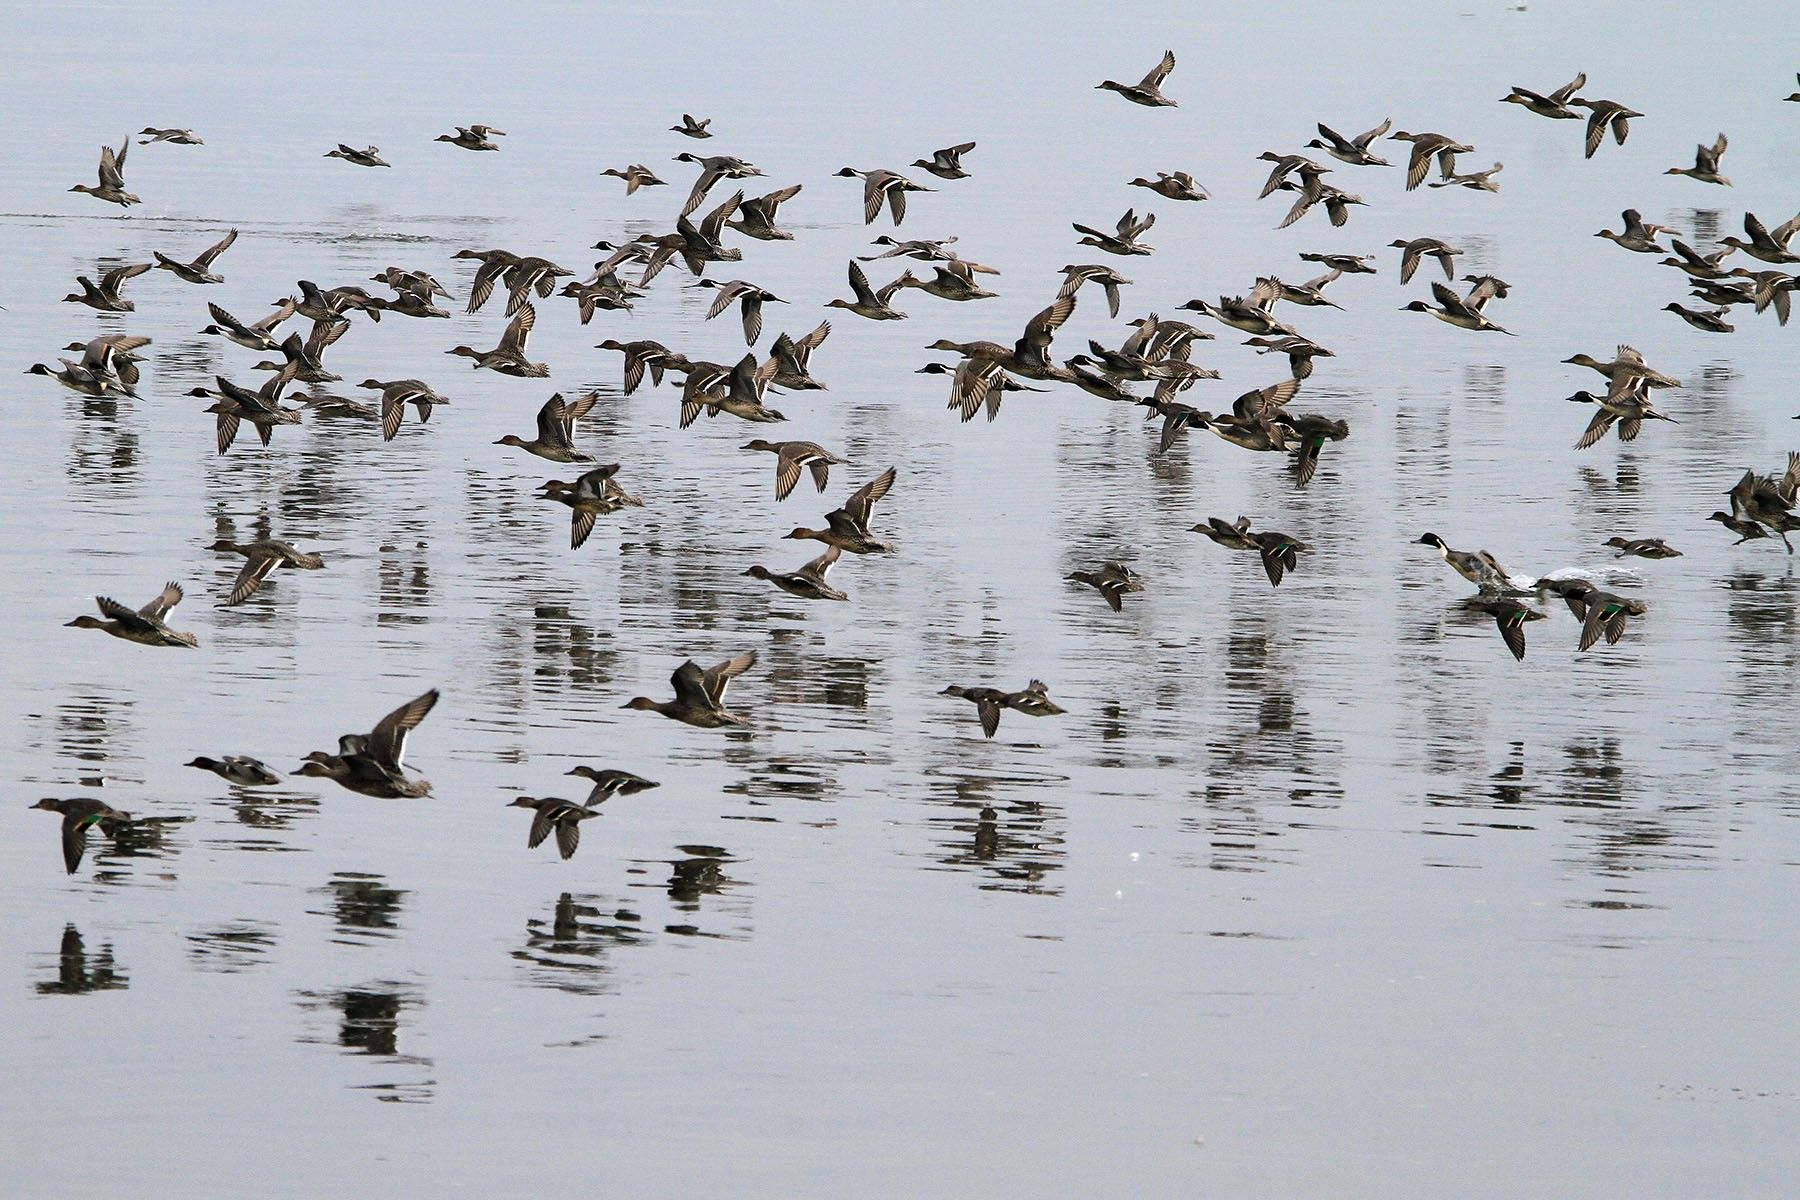 Ducks fly along the waters of Boundary Bay